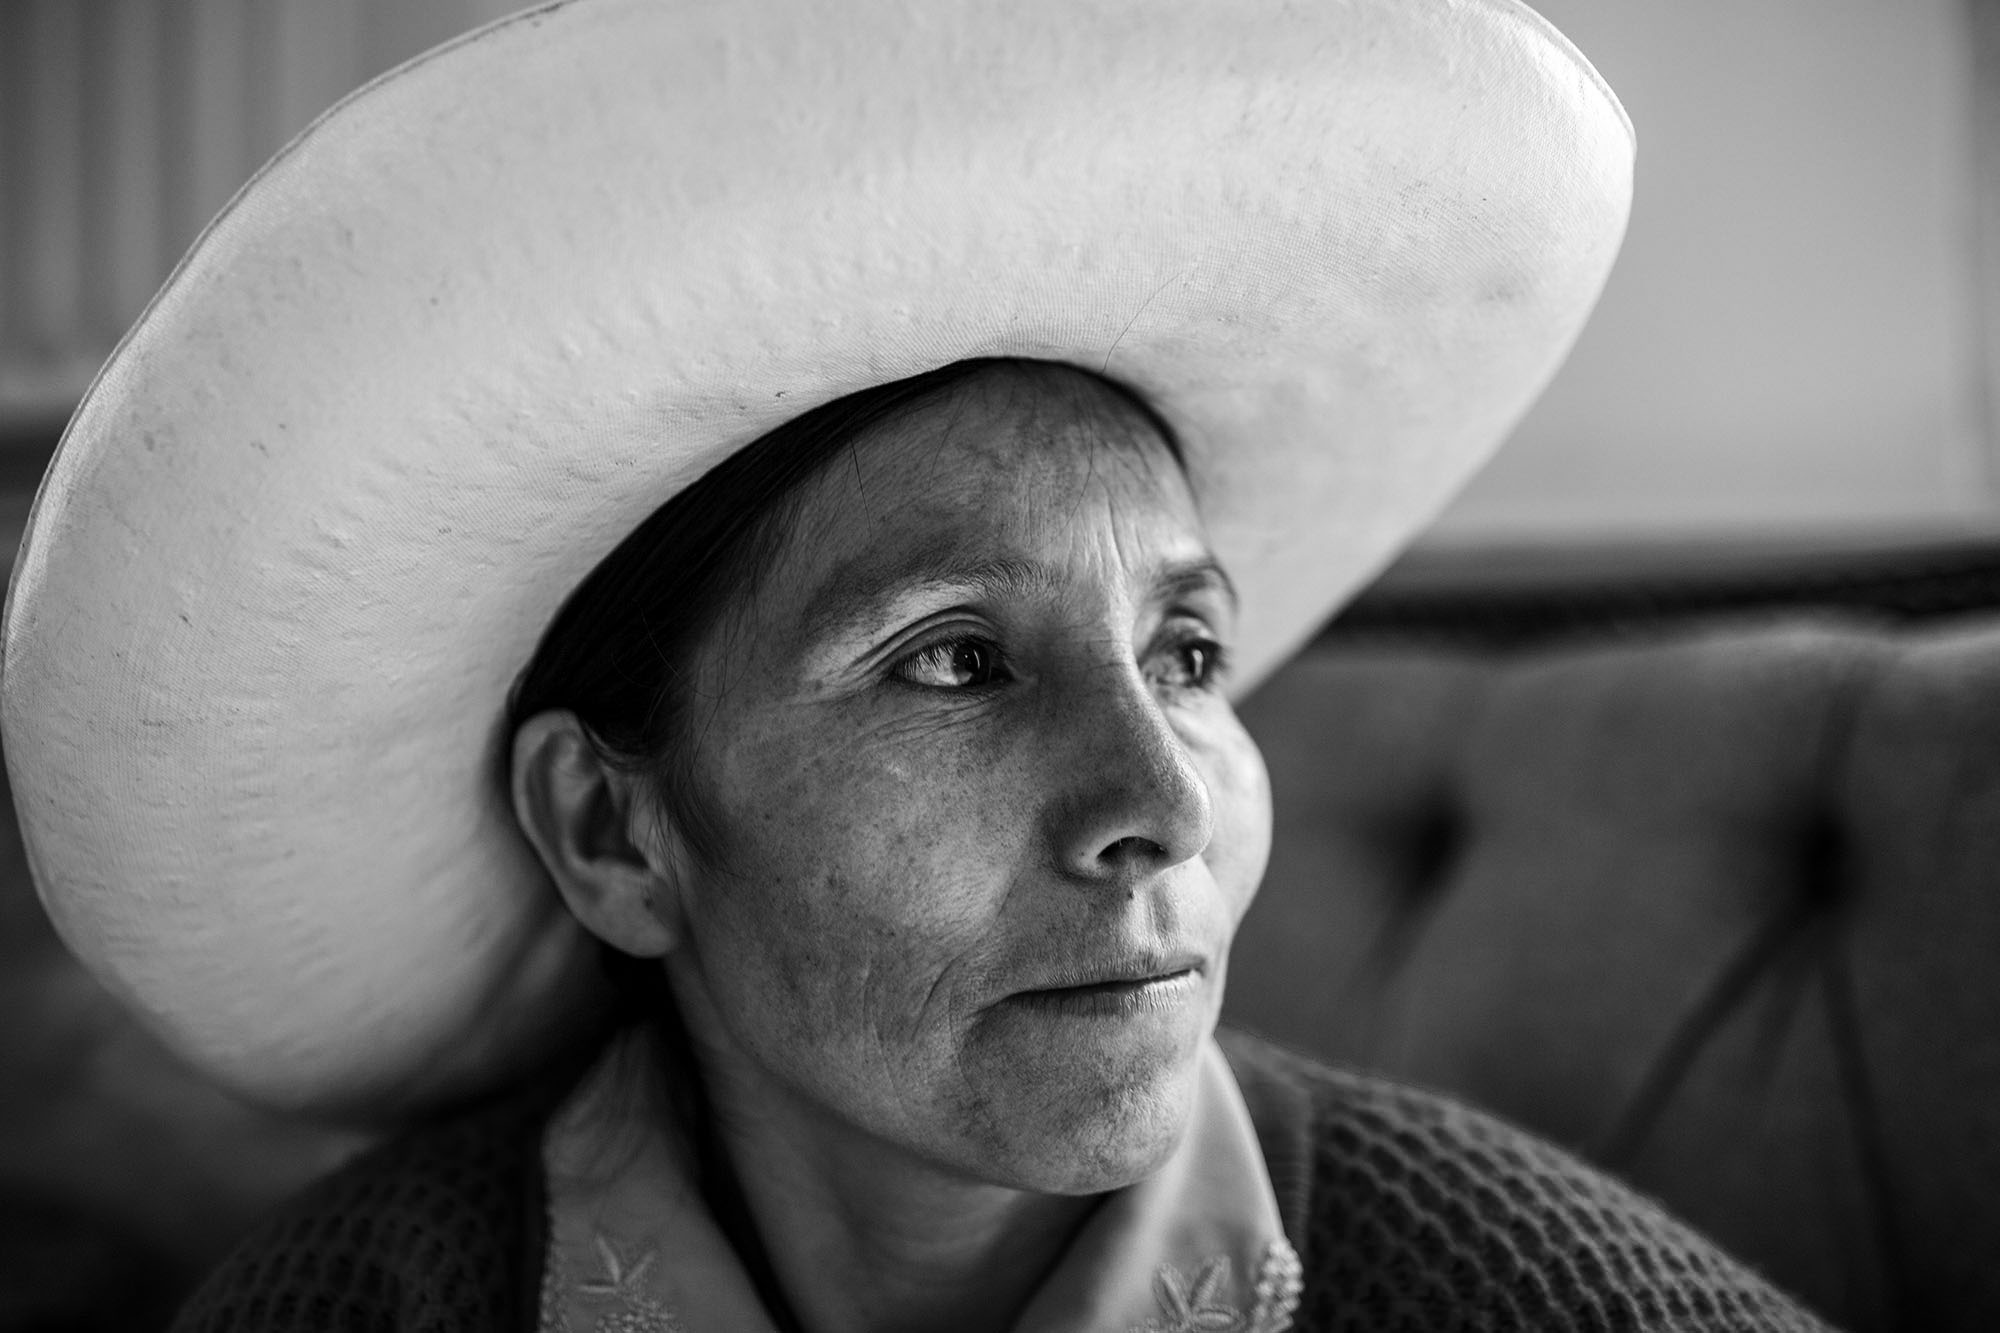 Máxima Acuña de Chaupe, winner of the Goldman Environmental Prize, became a symbol of resistance refusing to sell her 60-acre of land in Perú to the largest gold-mining project in South America.